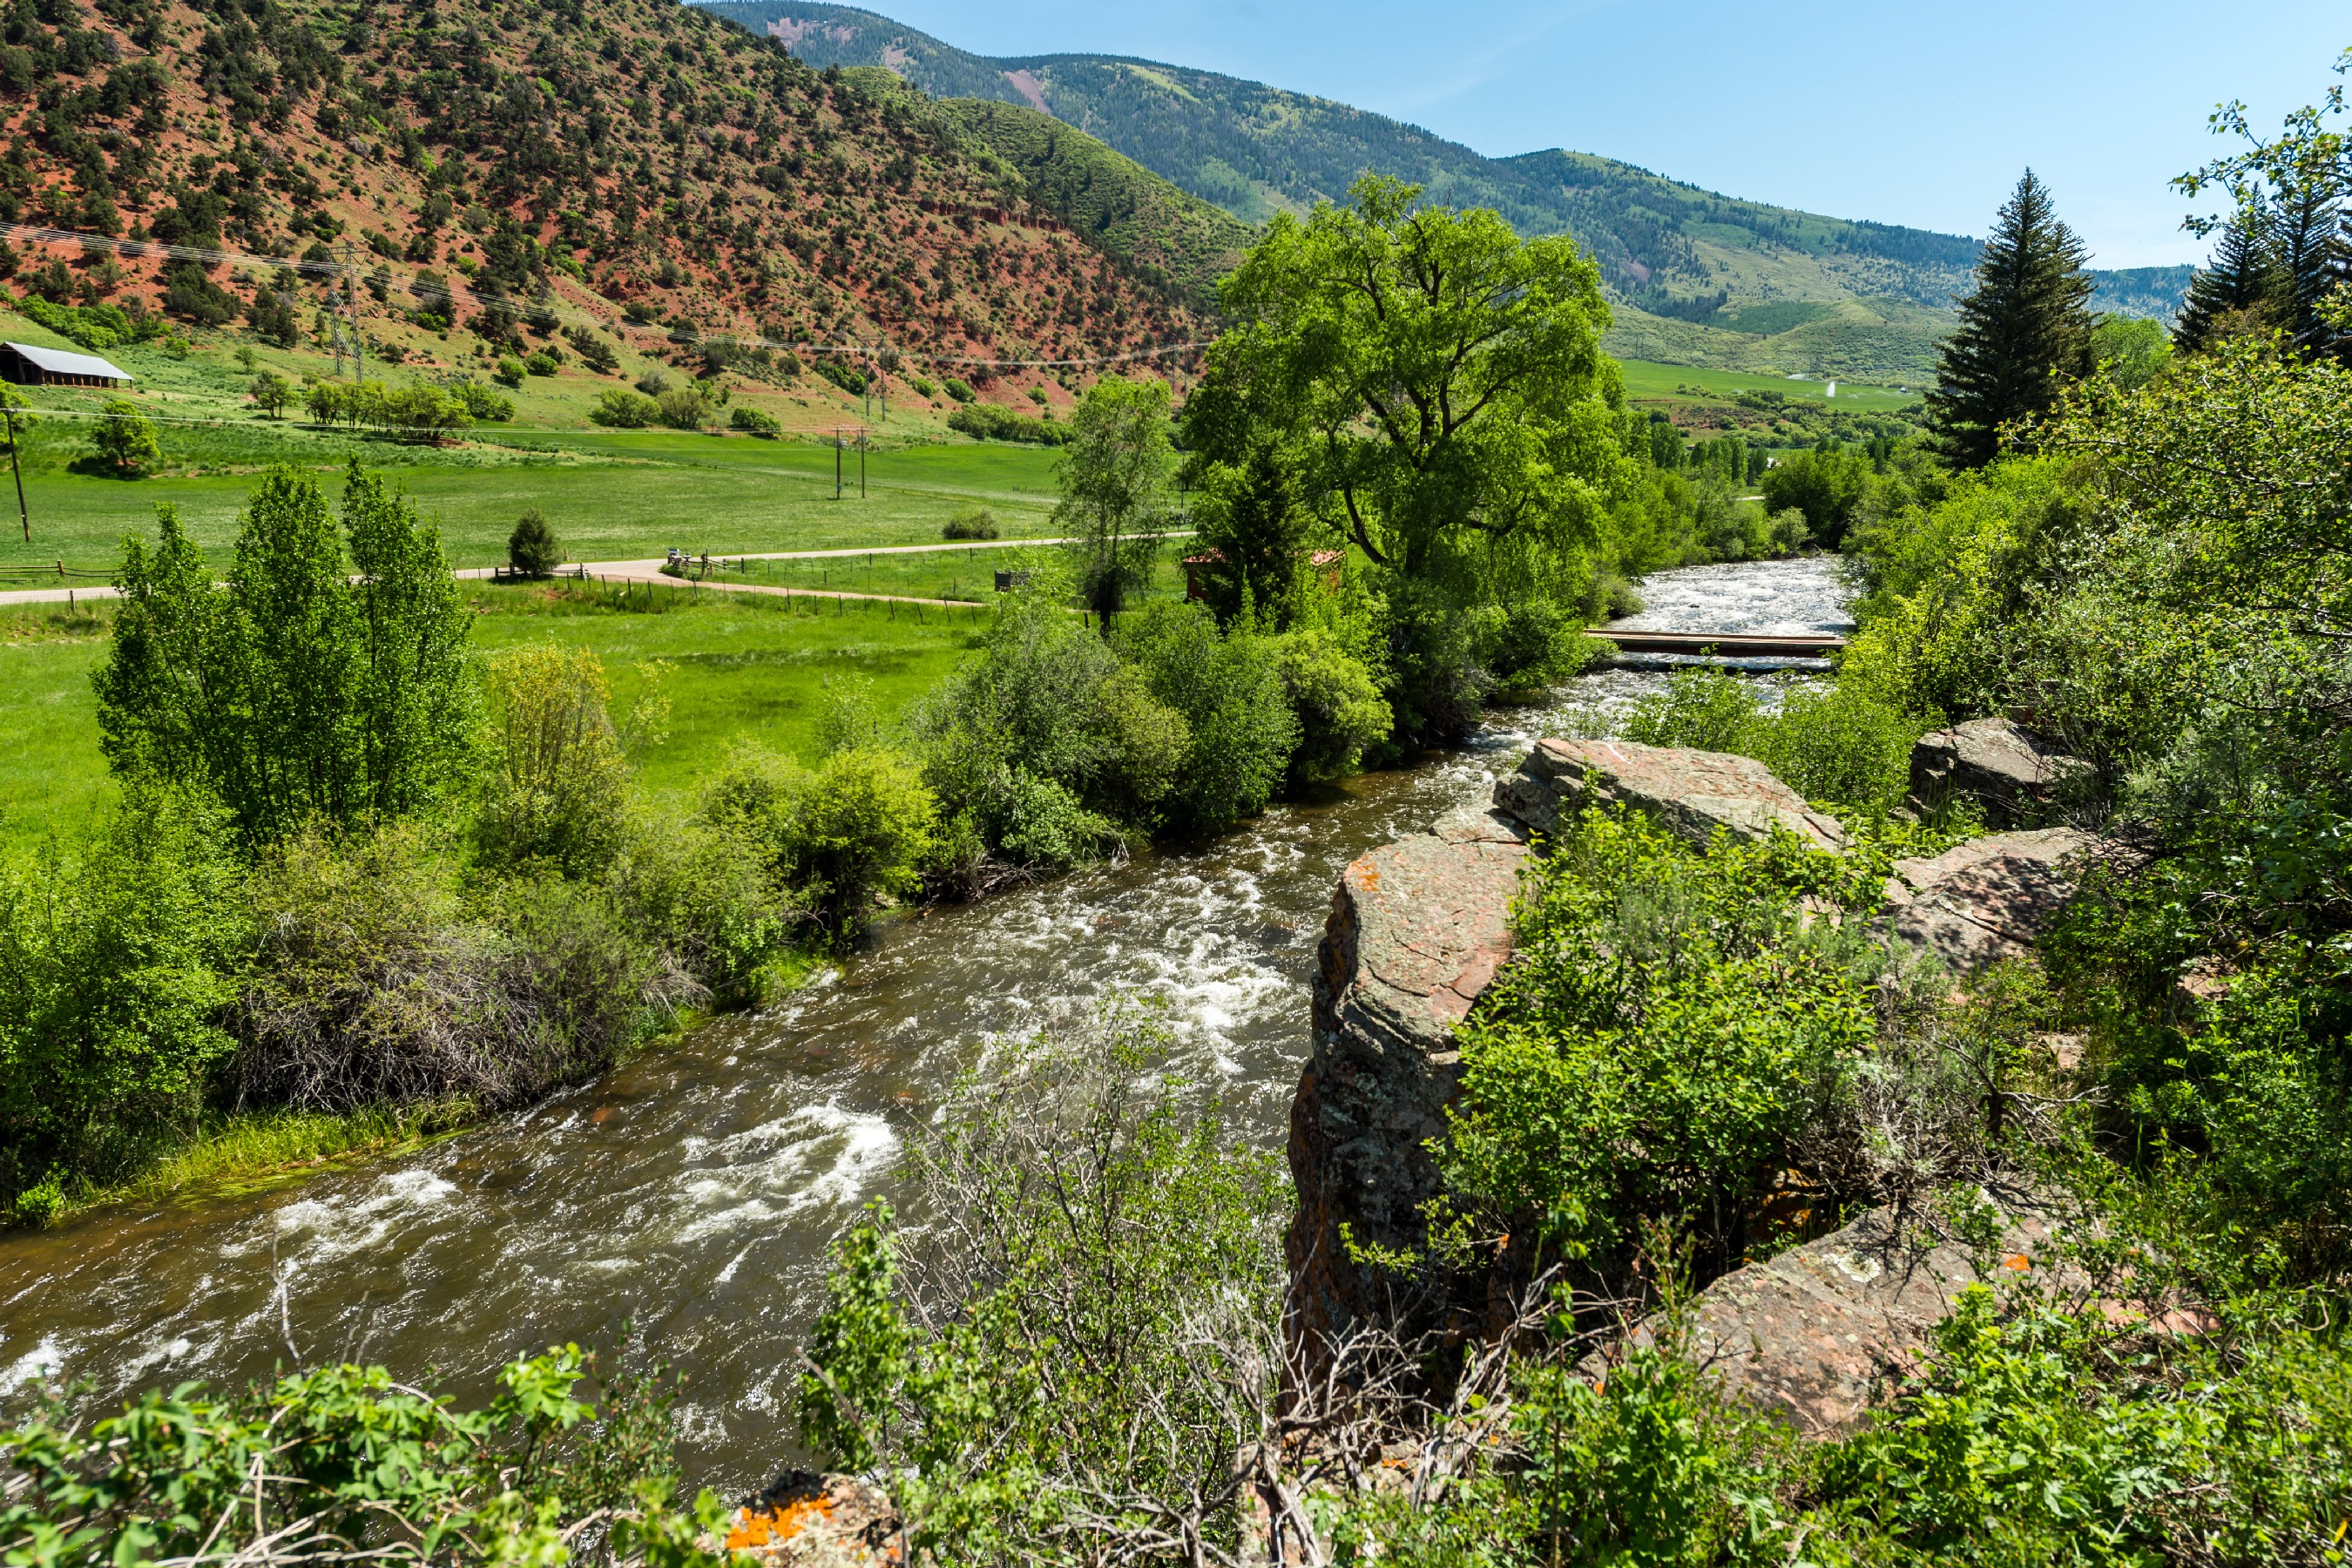 Land for Sale at FRYING PAN VALLEY 54 Spruce Road Basalt, Colorado, 81621 United States